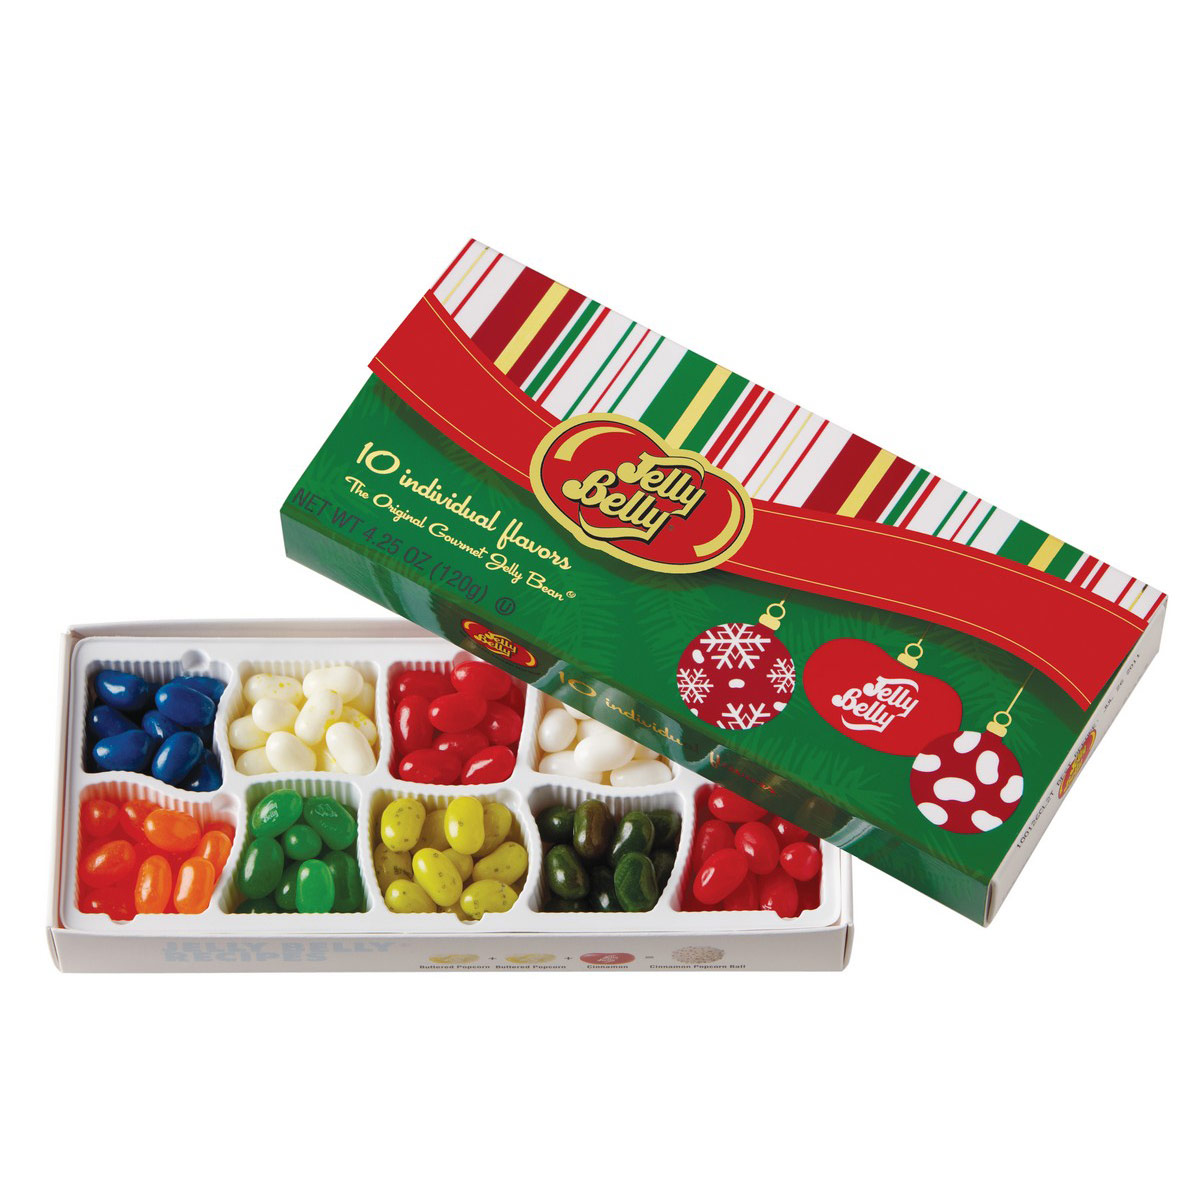 10-Flavor Jelly Bean Christmas Gift Box